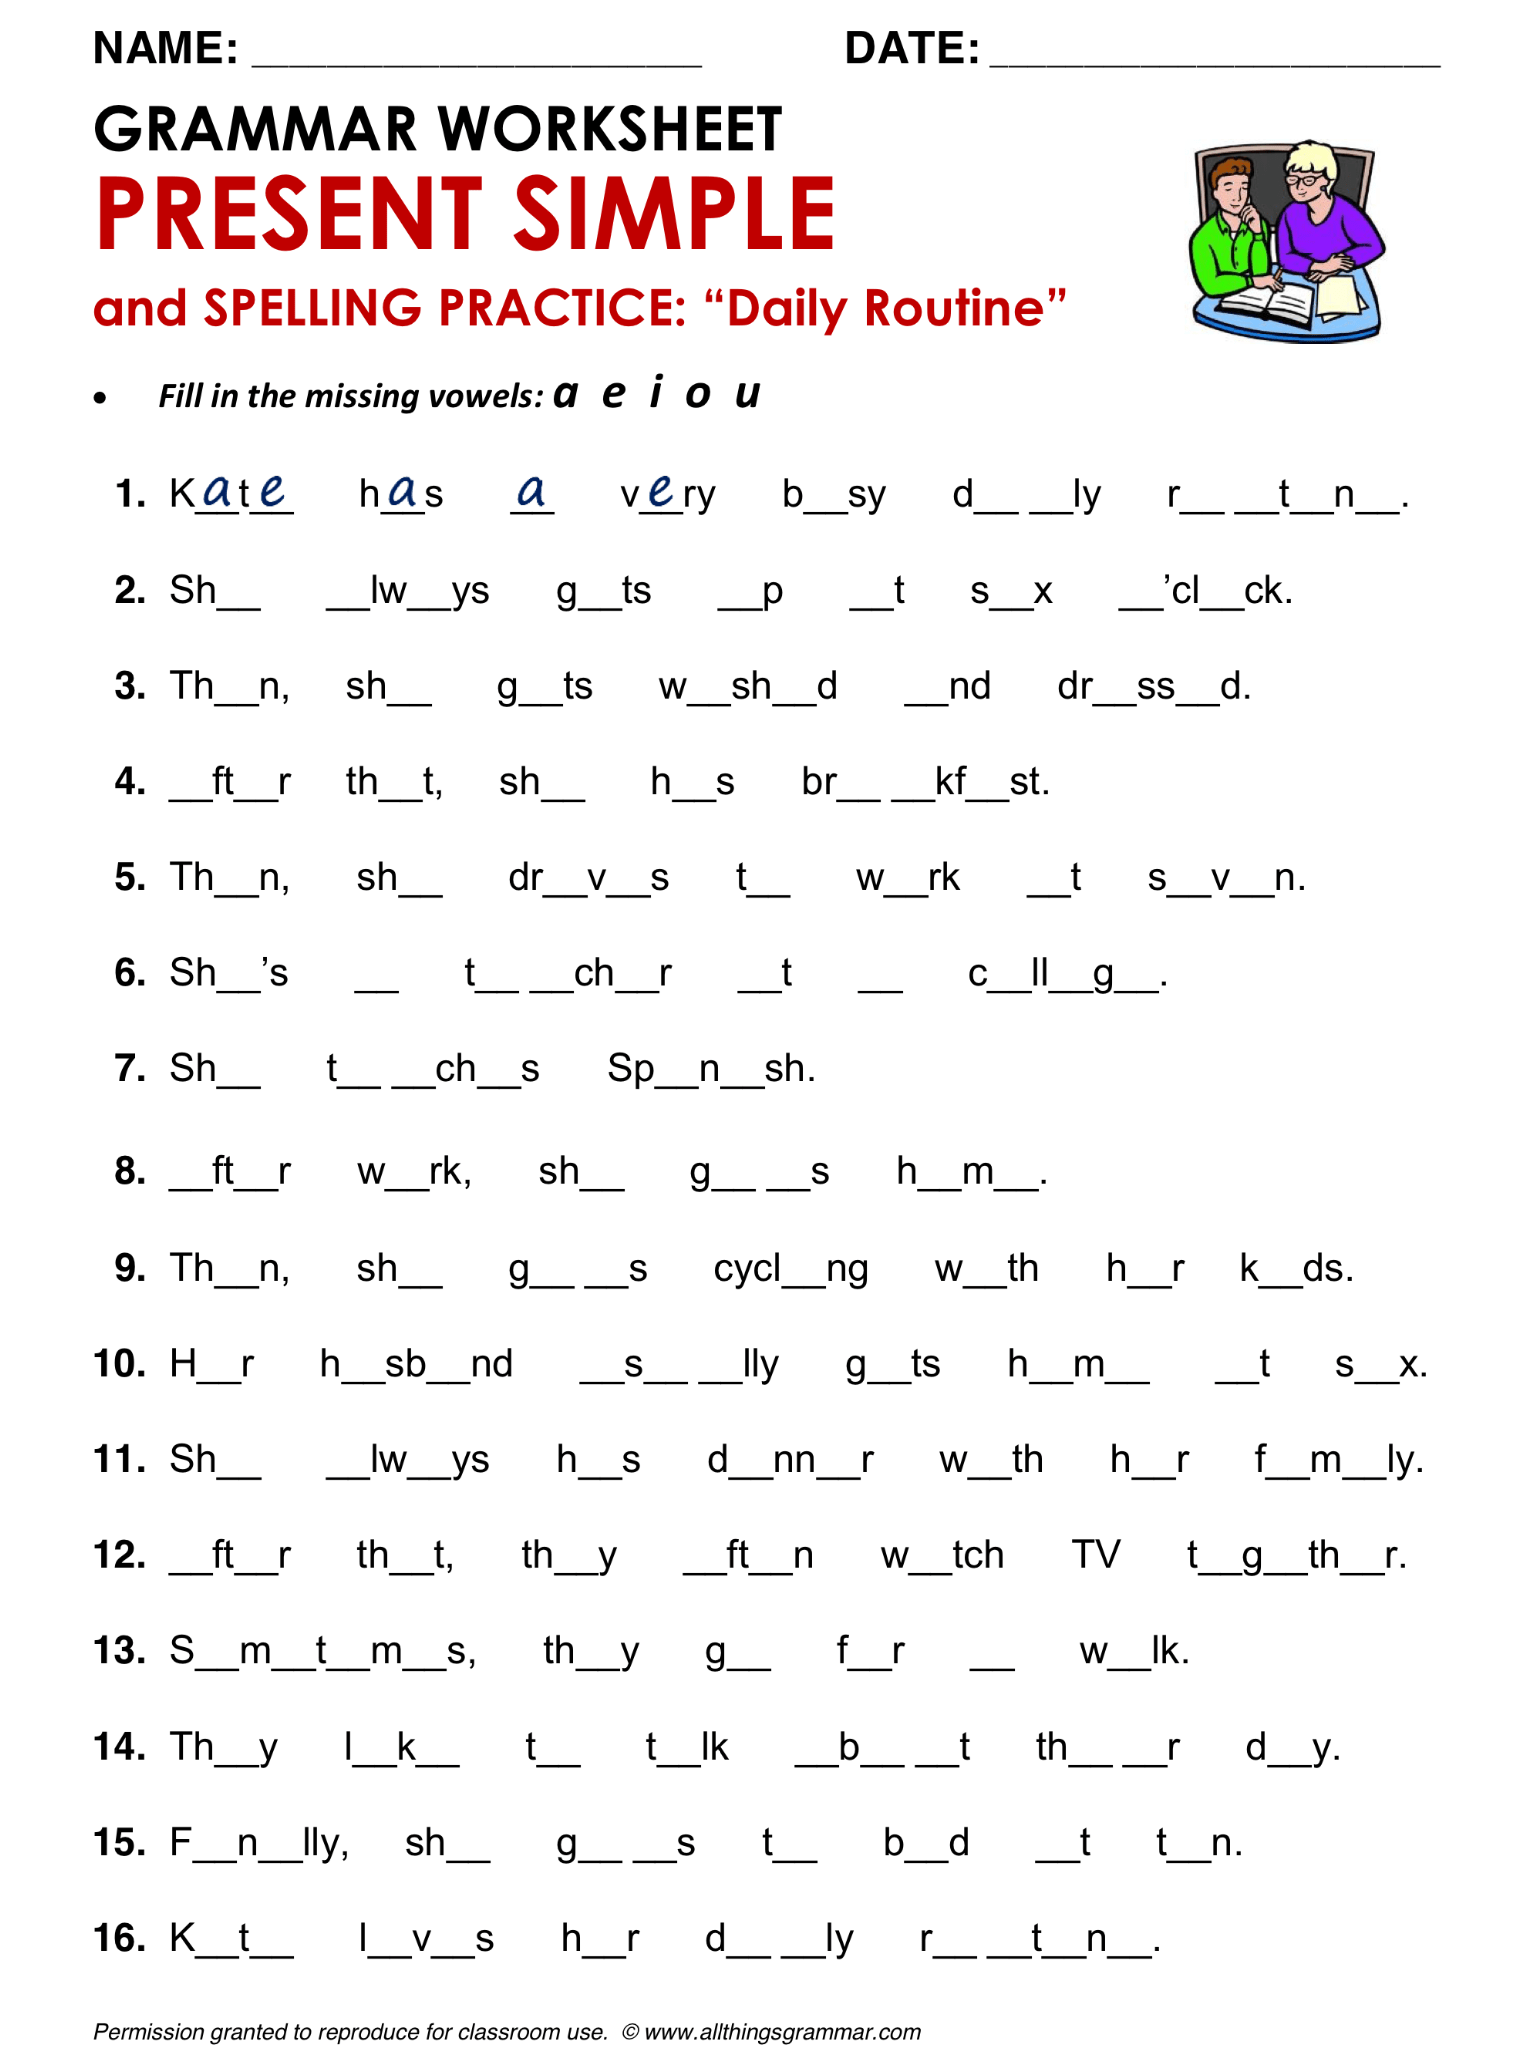 English Grammar Present Simple And Spelling Practice Daily Routine